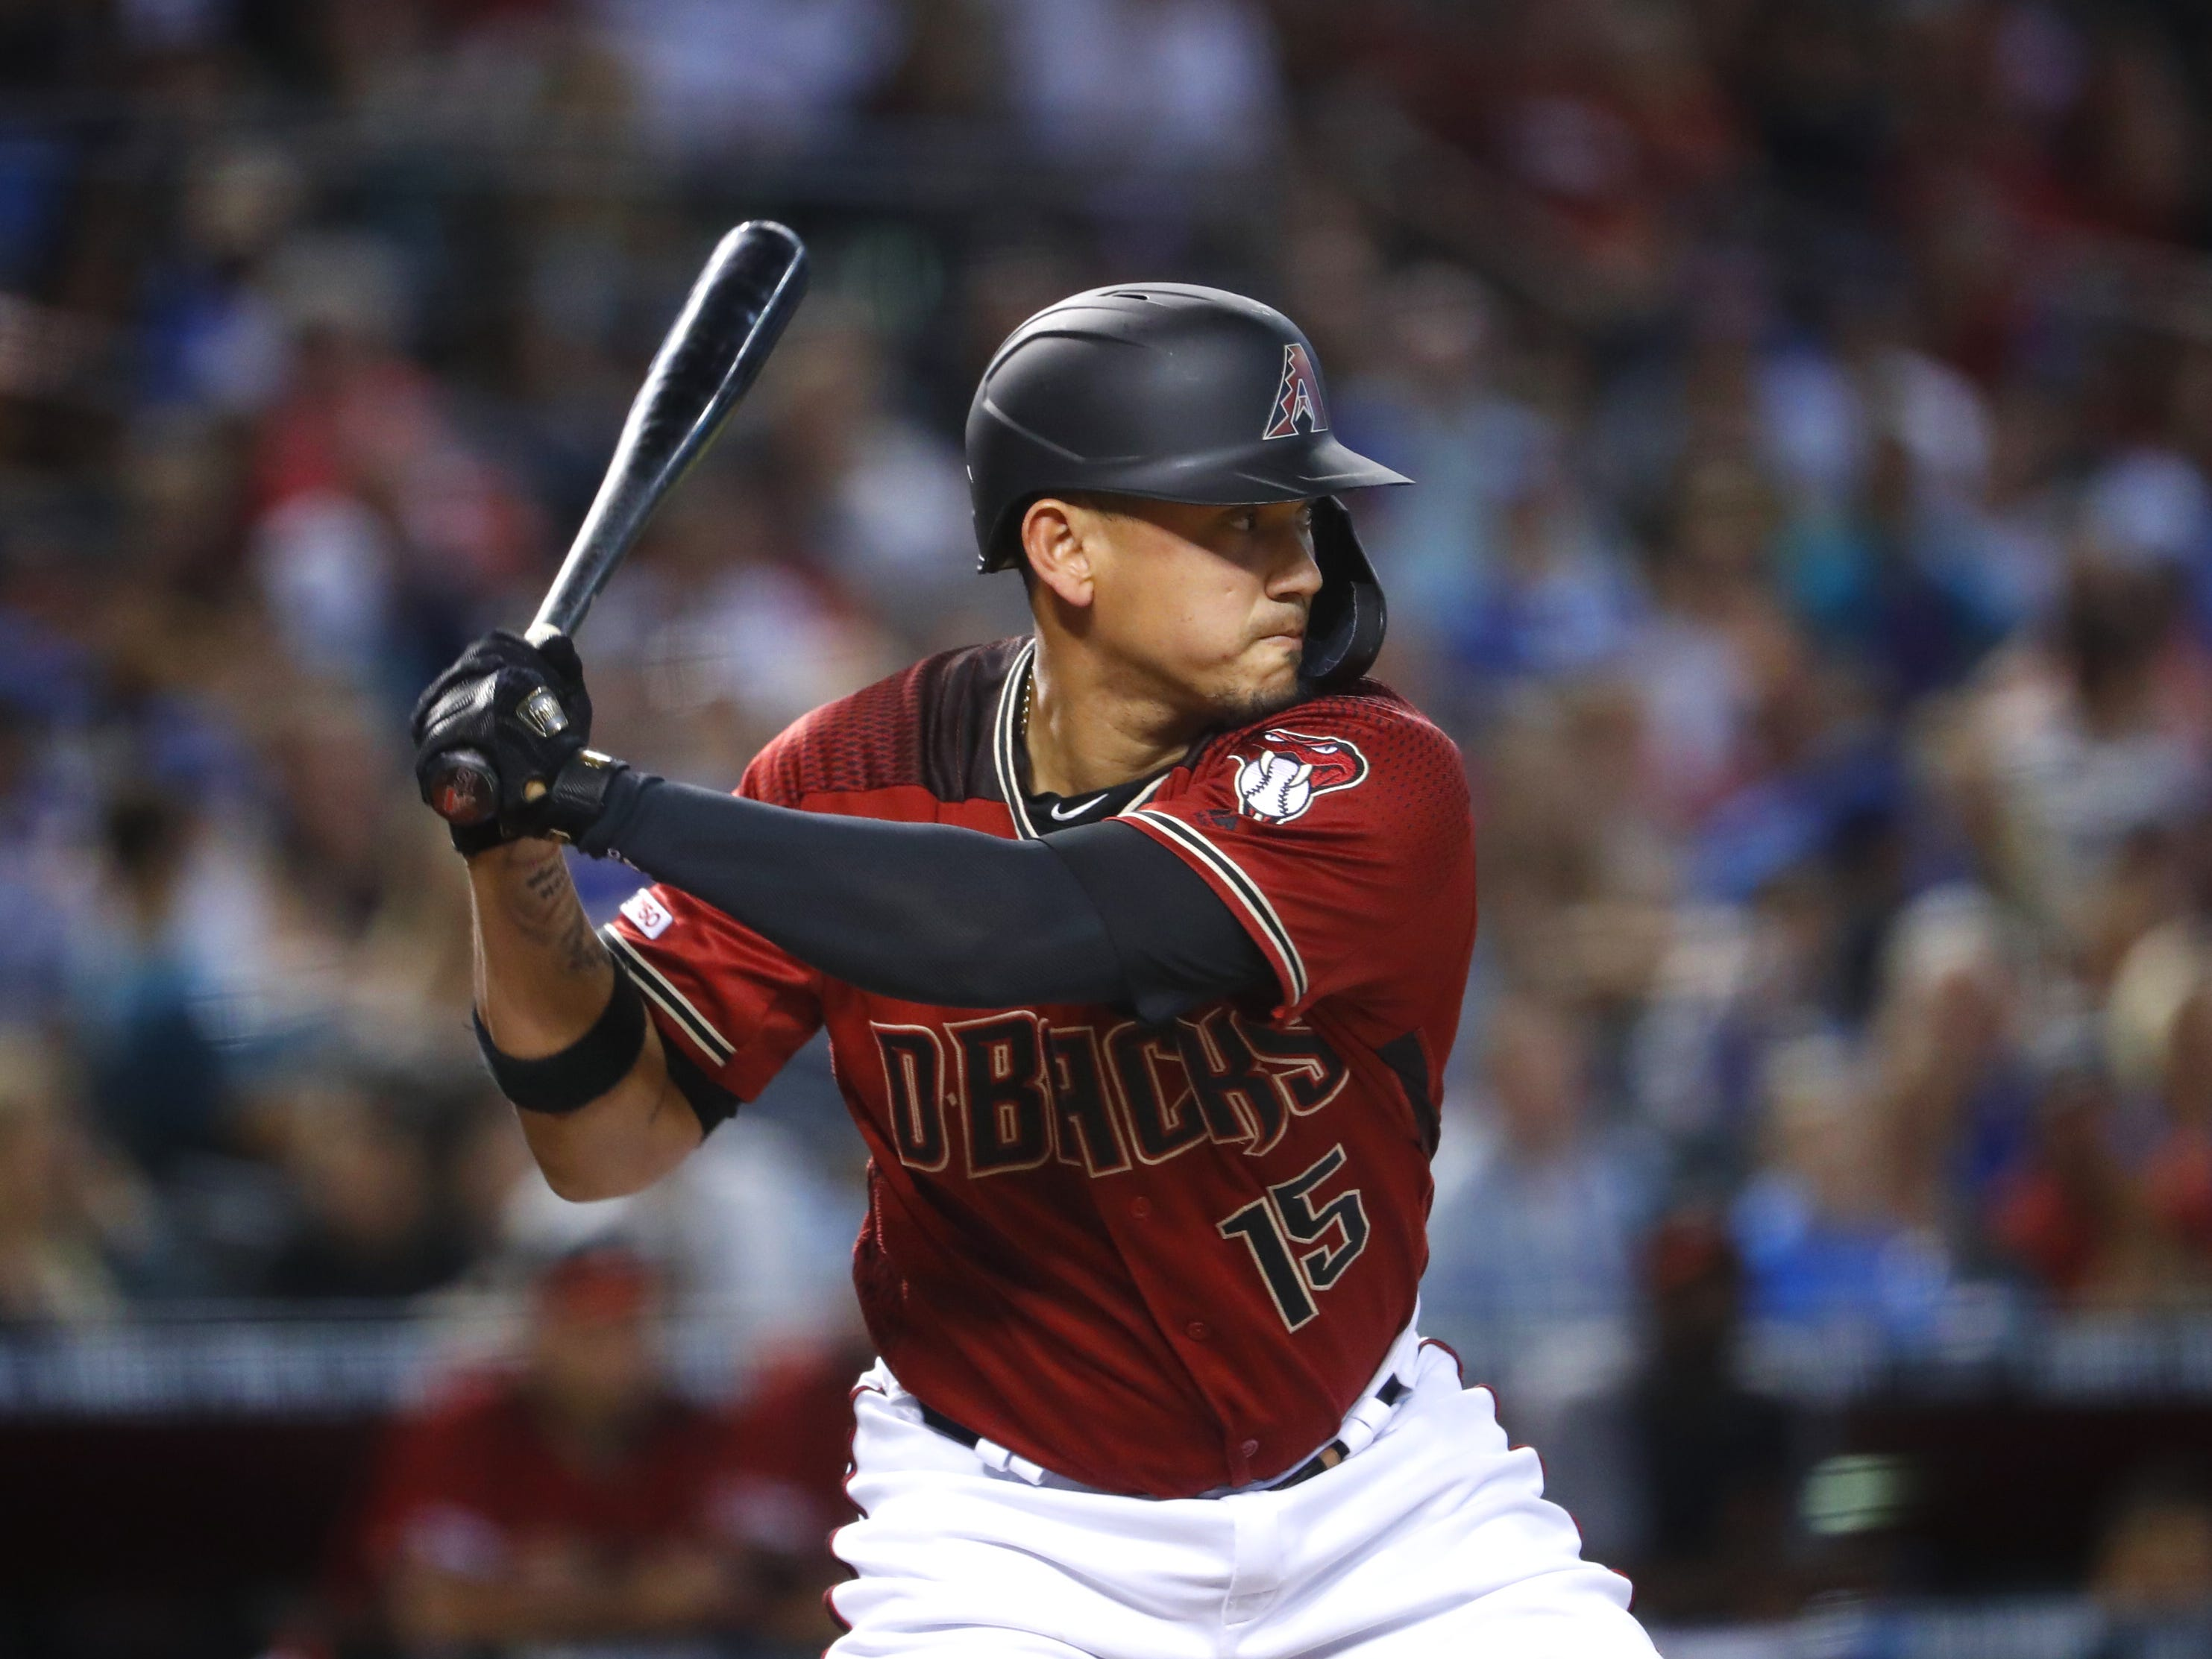 Diamondbacks' Ildemaro Vargas (15) swings at a pitch against the Cubs during the sixth inning at Chase Field in Phoenix, Ariz. on April 28, 2019.